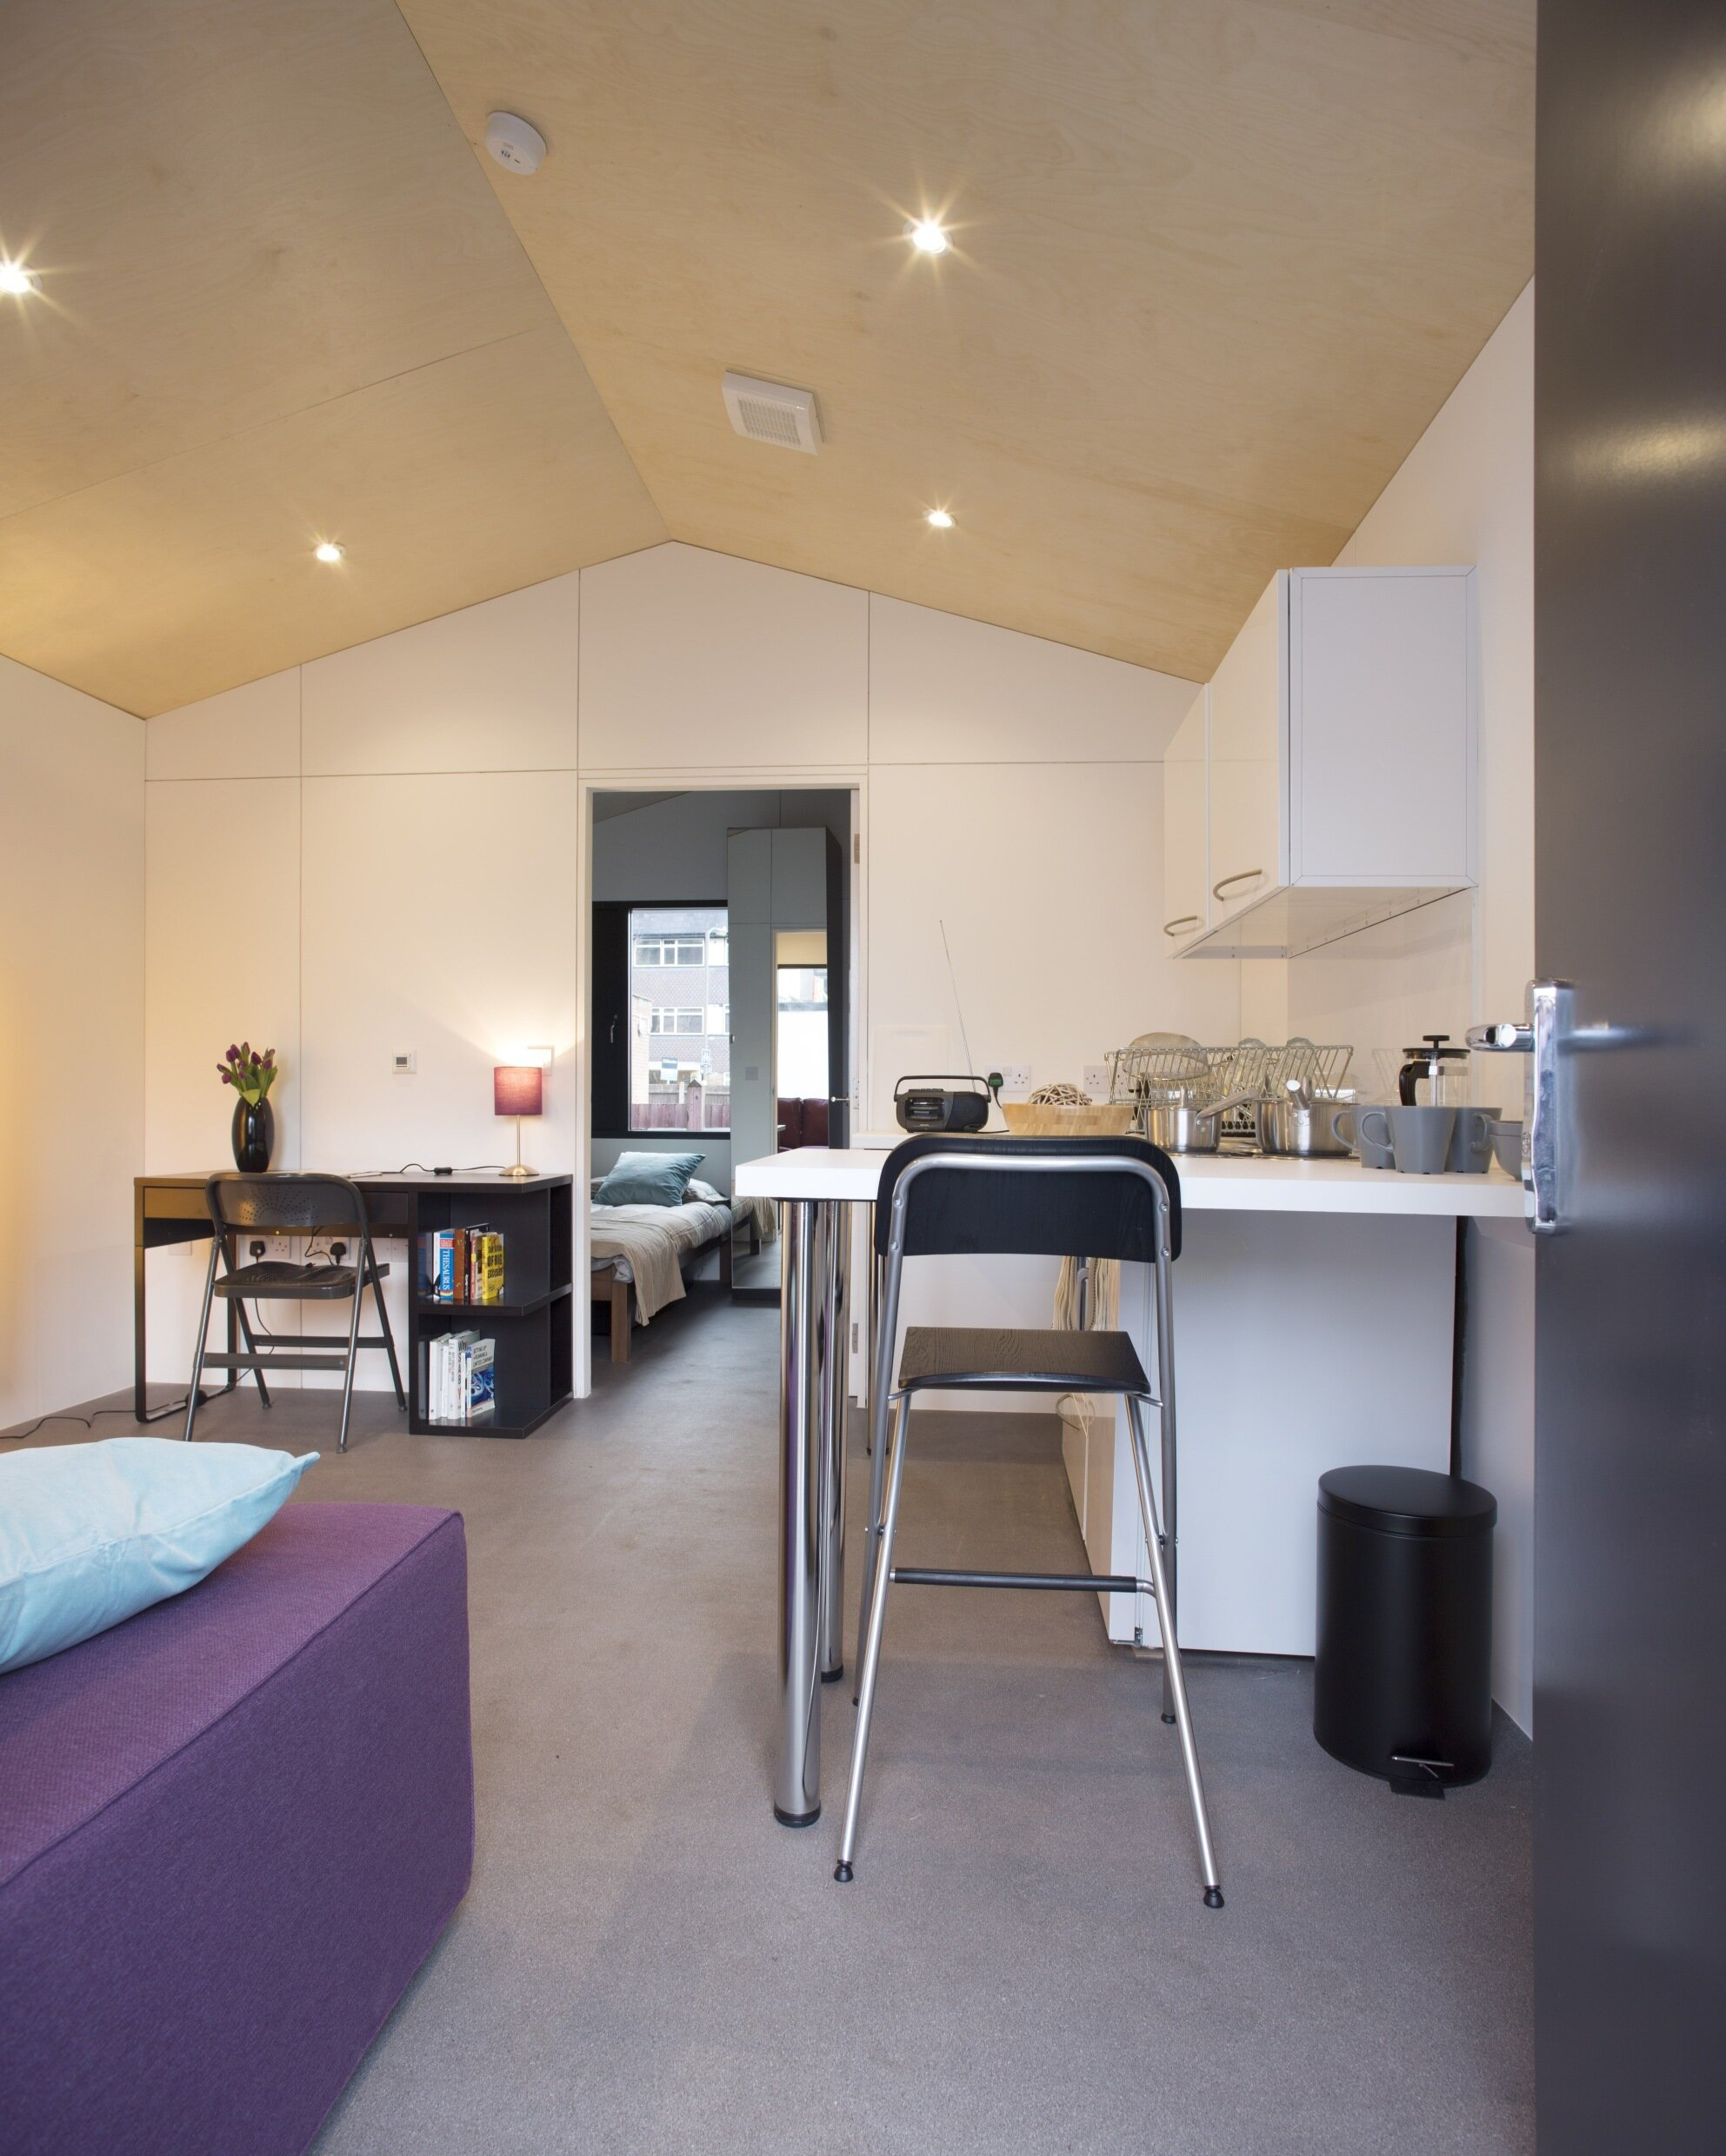 Richard Rogers - Pre-Fab Y-Cube - UK - Tiny House Kitchen & Living Area - Humble Homes